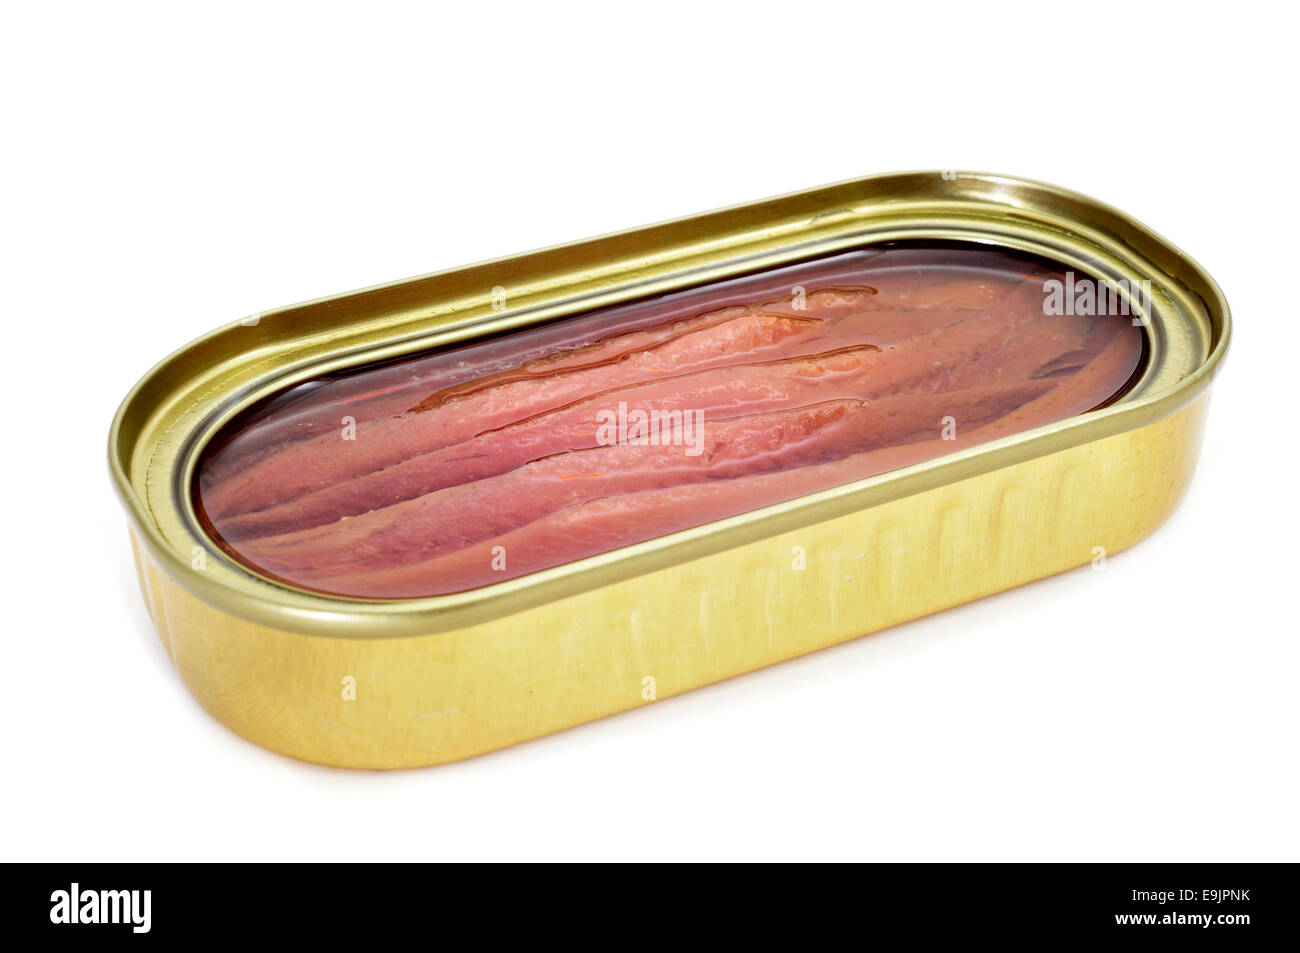 an open can of anchovies on a white background - Stock Image